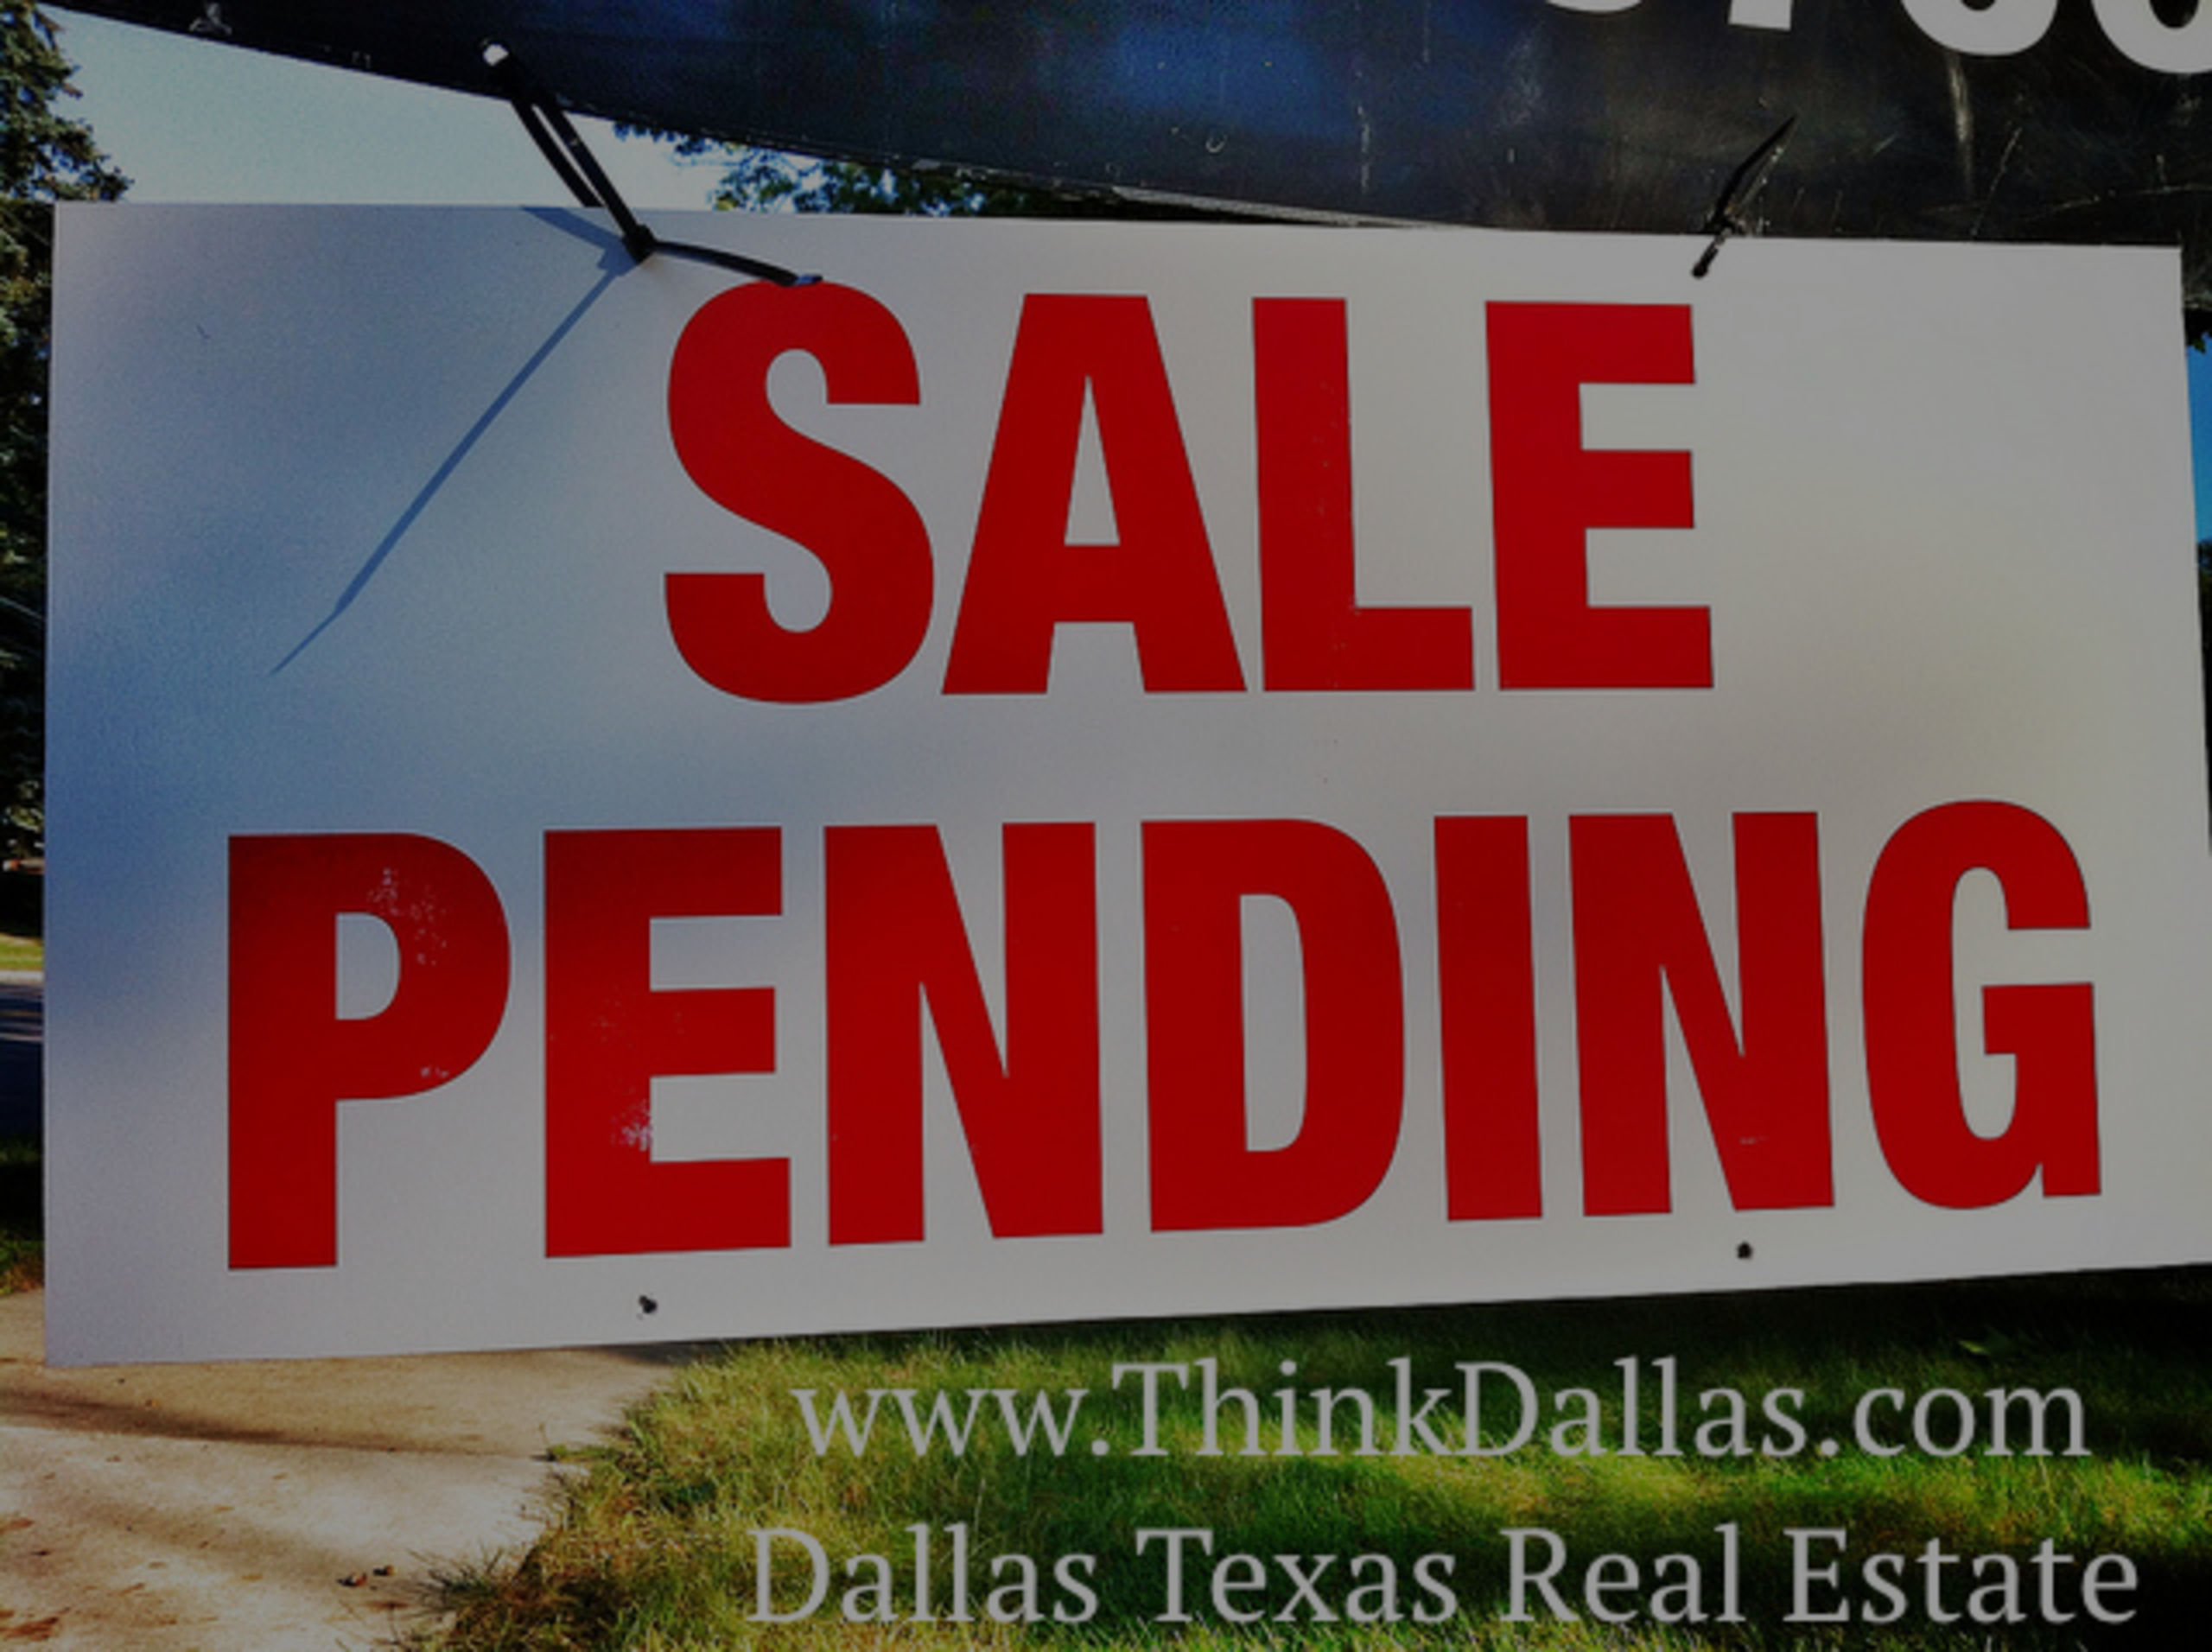 Uptown Dallas Property Listings: Annoyingly Even-Handed